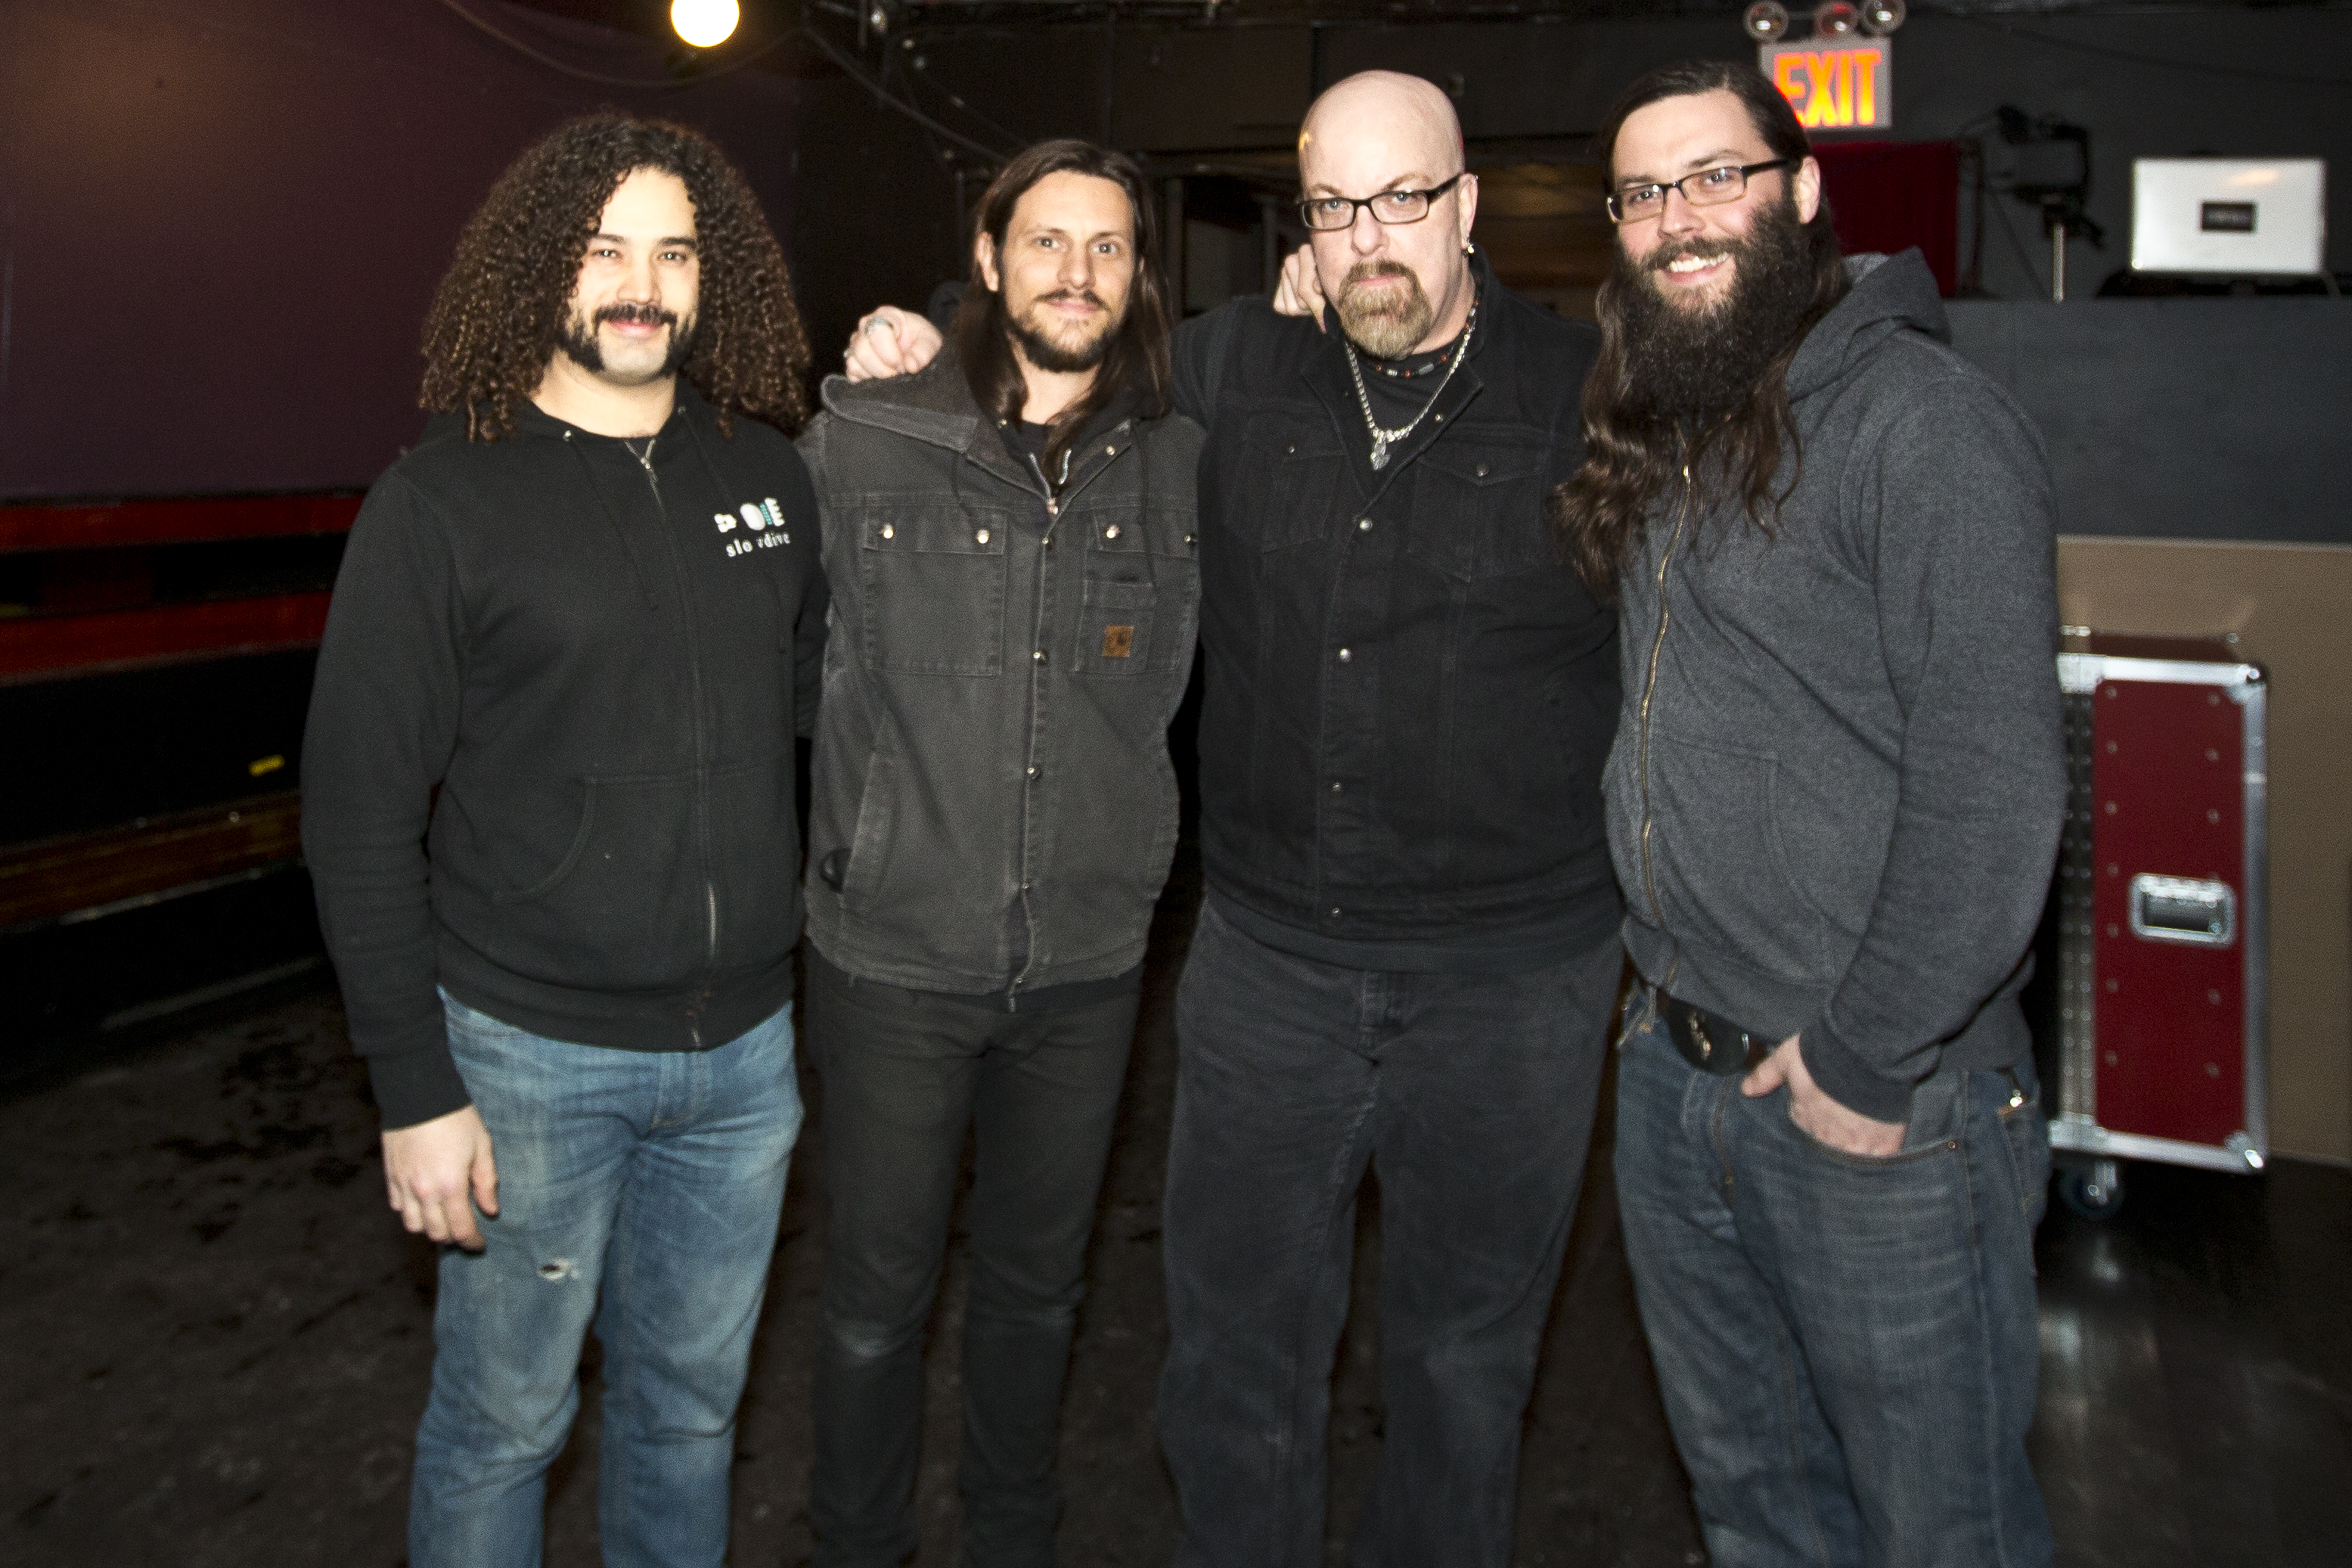 With Carmine Laietta (far left) and Nick Palmirotto (left) of Hull and Drew Mack, formerly of Hull now of Cleanteeth, before the Hull farewell concert at Coco 66 in Brooklyn, NY- February 21, 2015